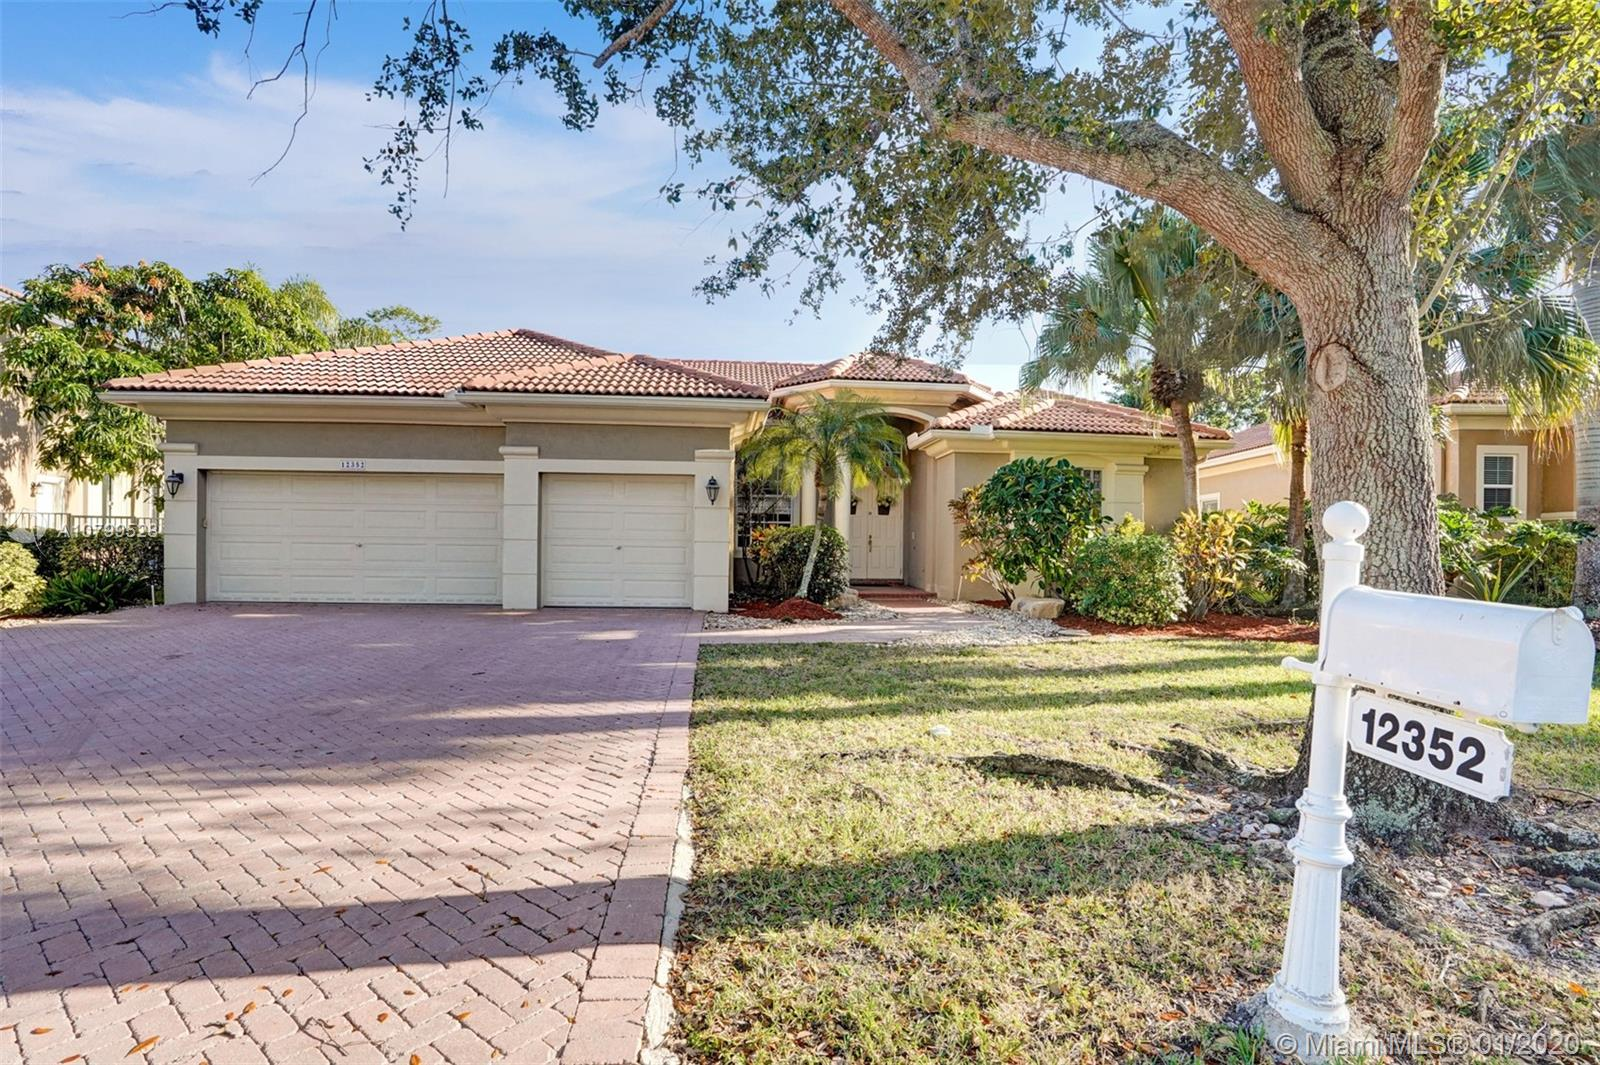 "WOW! GREAT BUY ON THIS POPULAR SPLIT PLAN POOL HOME WITH 3-CAR GARAGE ON AN OUTSTANDING WATERFRONT LOT IN BAY POINTE! 42"" MAPLE KITCHEN WITH GRANITE COUNTERS! NEWER A/C! TREMENDOUS TRAVERTINE MARBLE PATIO! LIGHT, BRIGHT AND READY TO GO!"